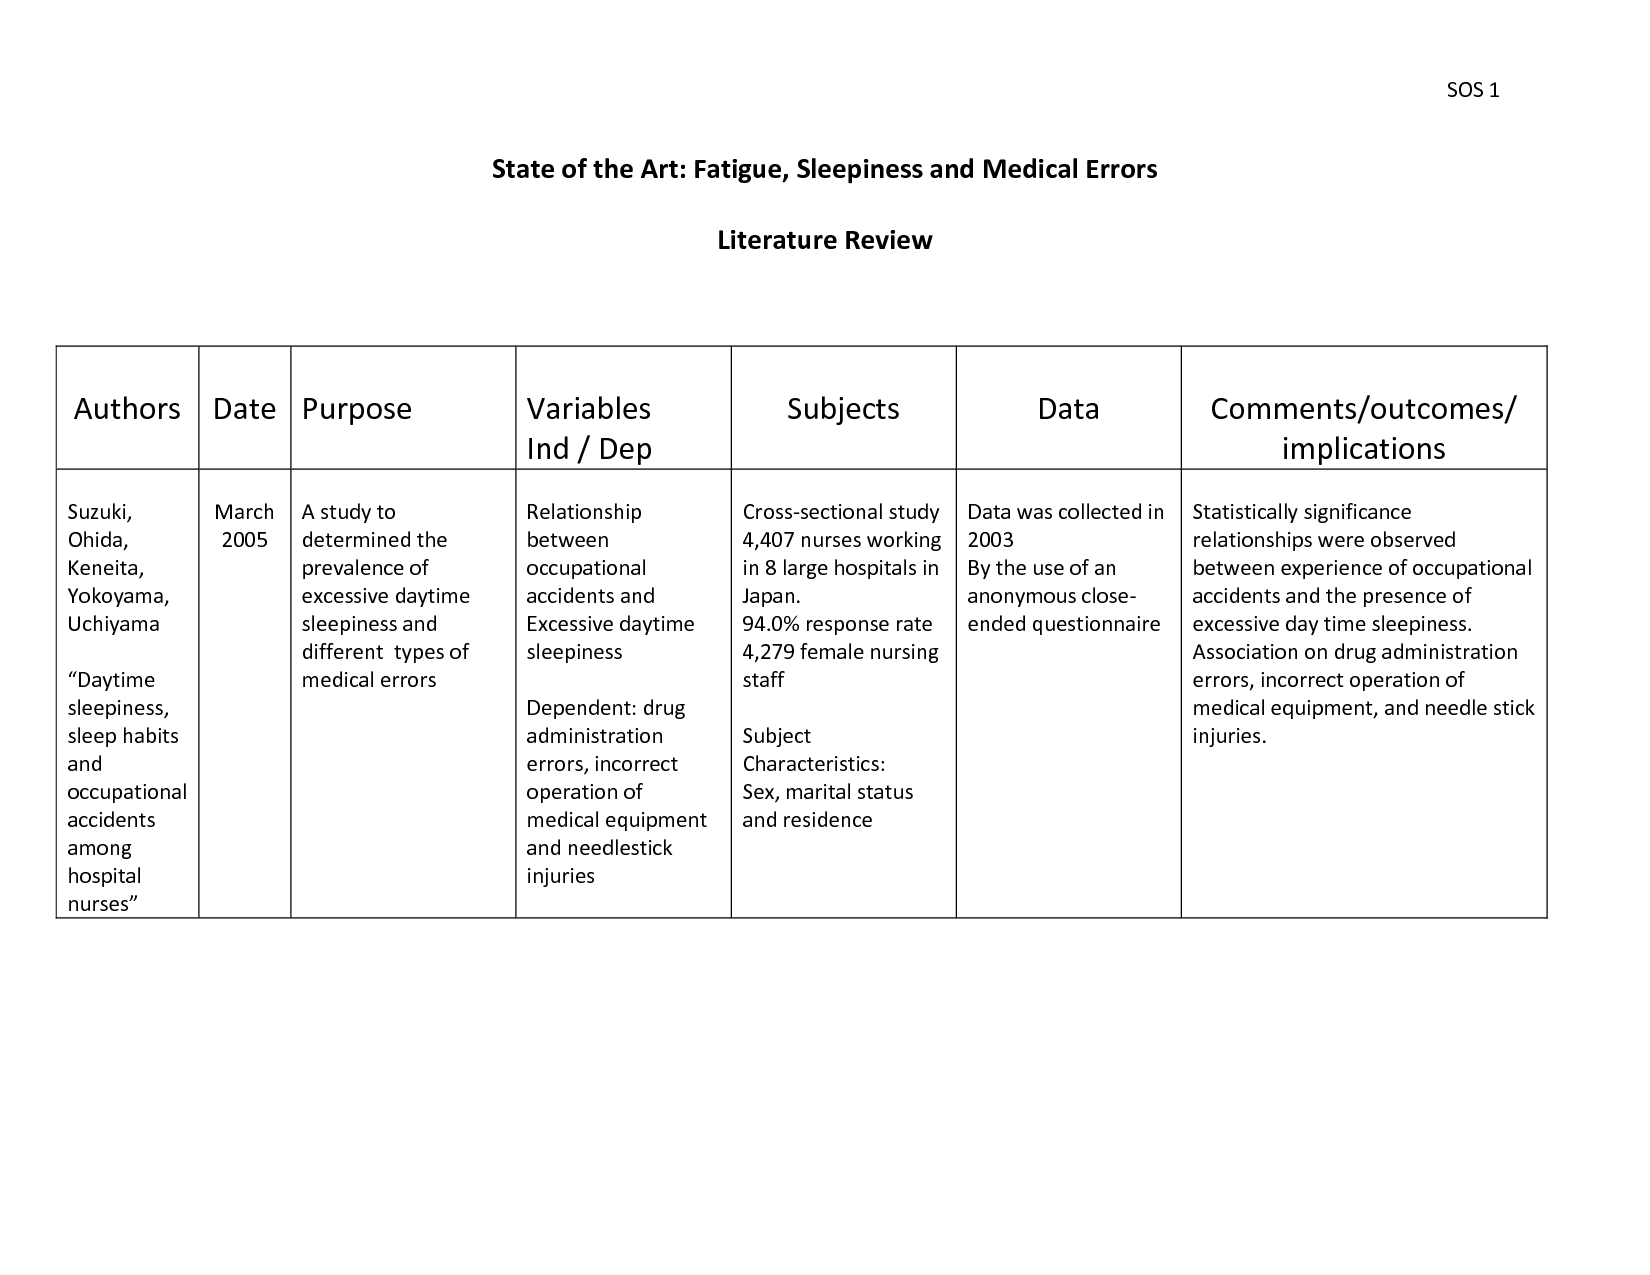 Literature Review Matrix